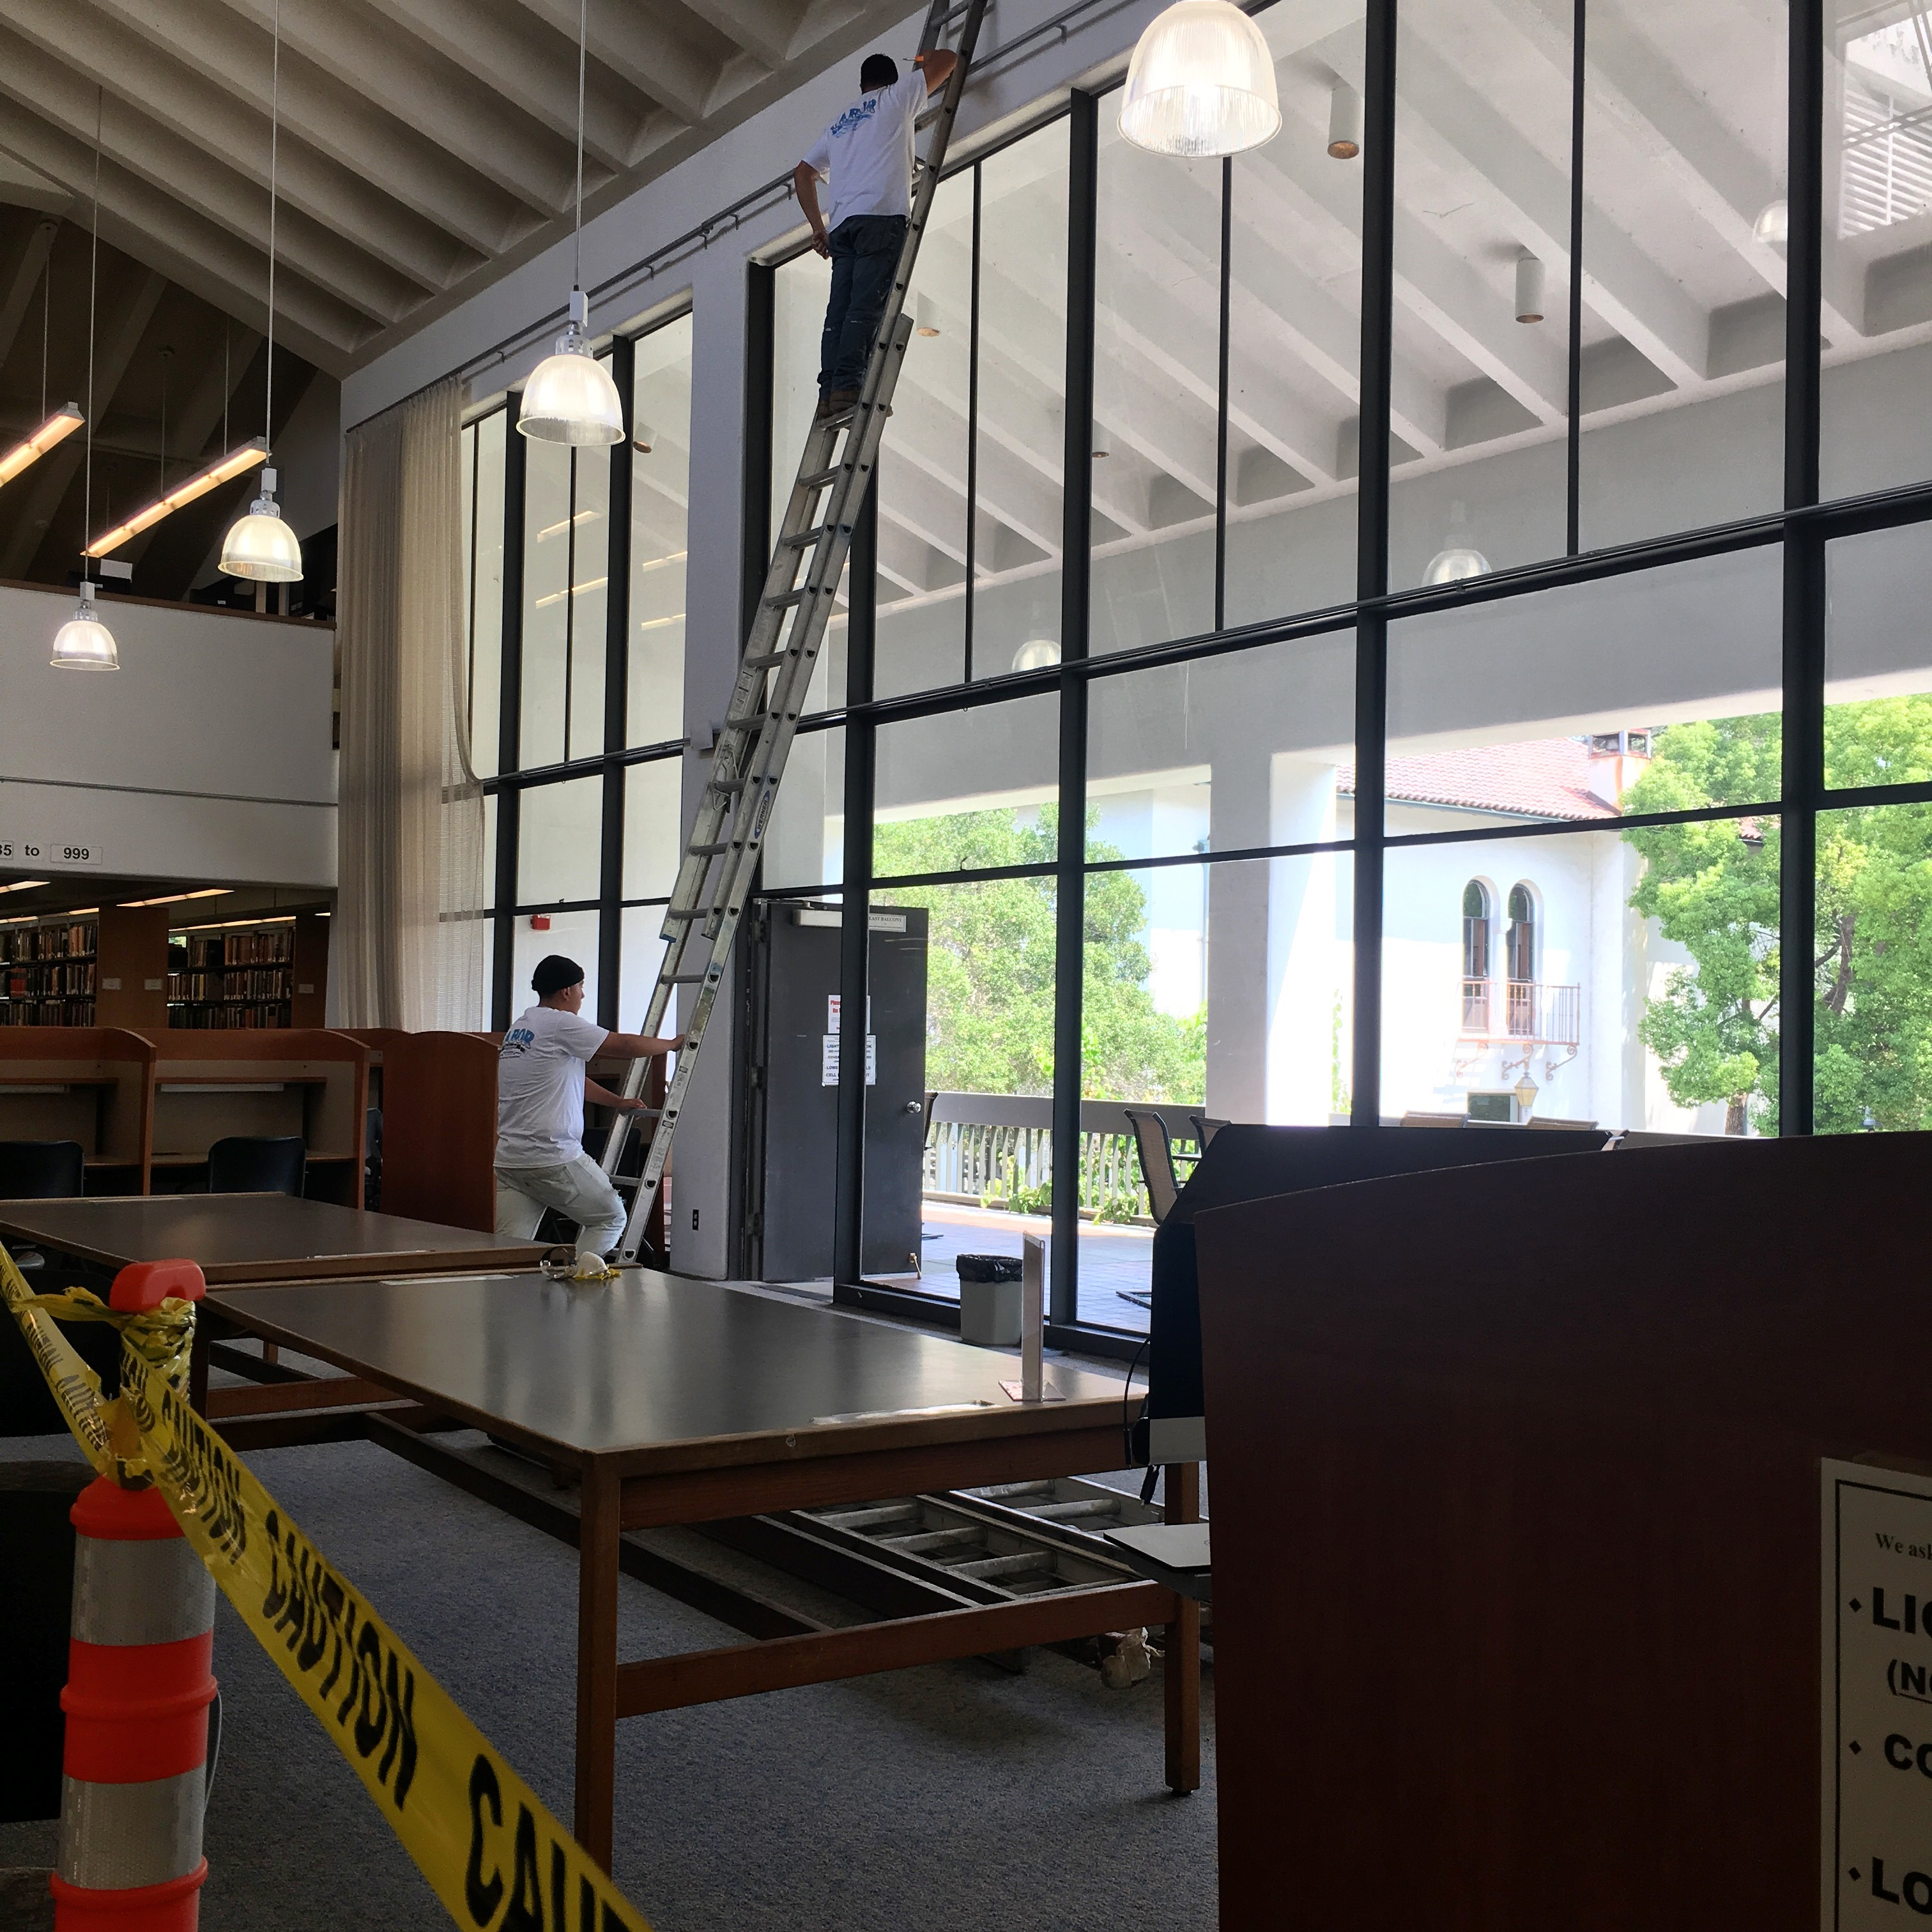 Taking down library curtains